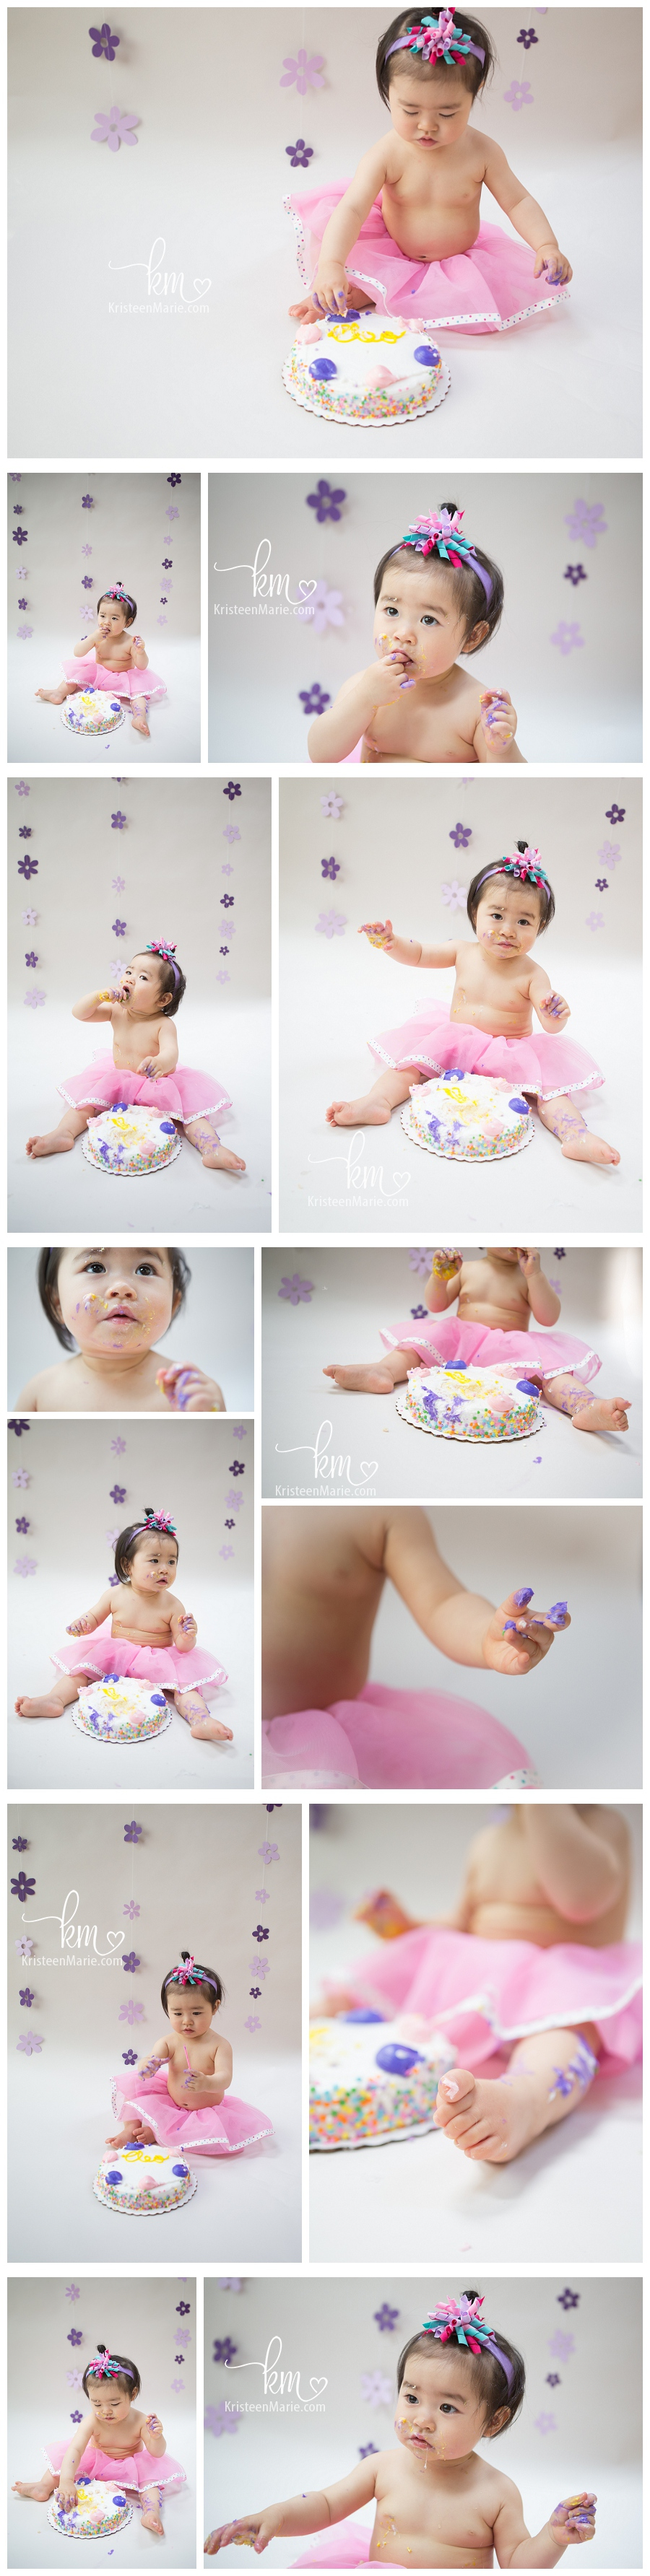 Pink and yellow cake smash photography